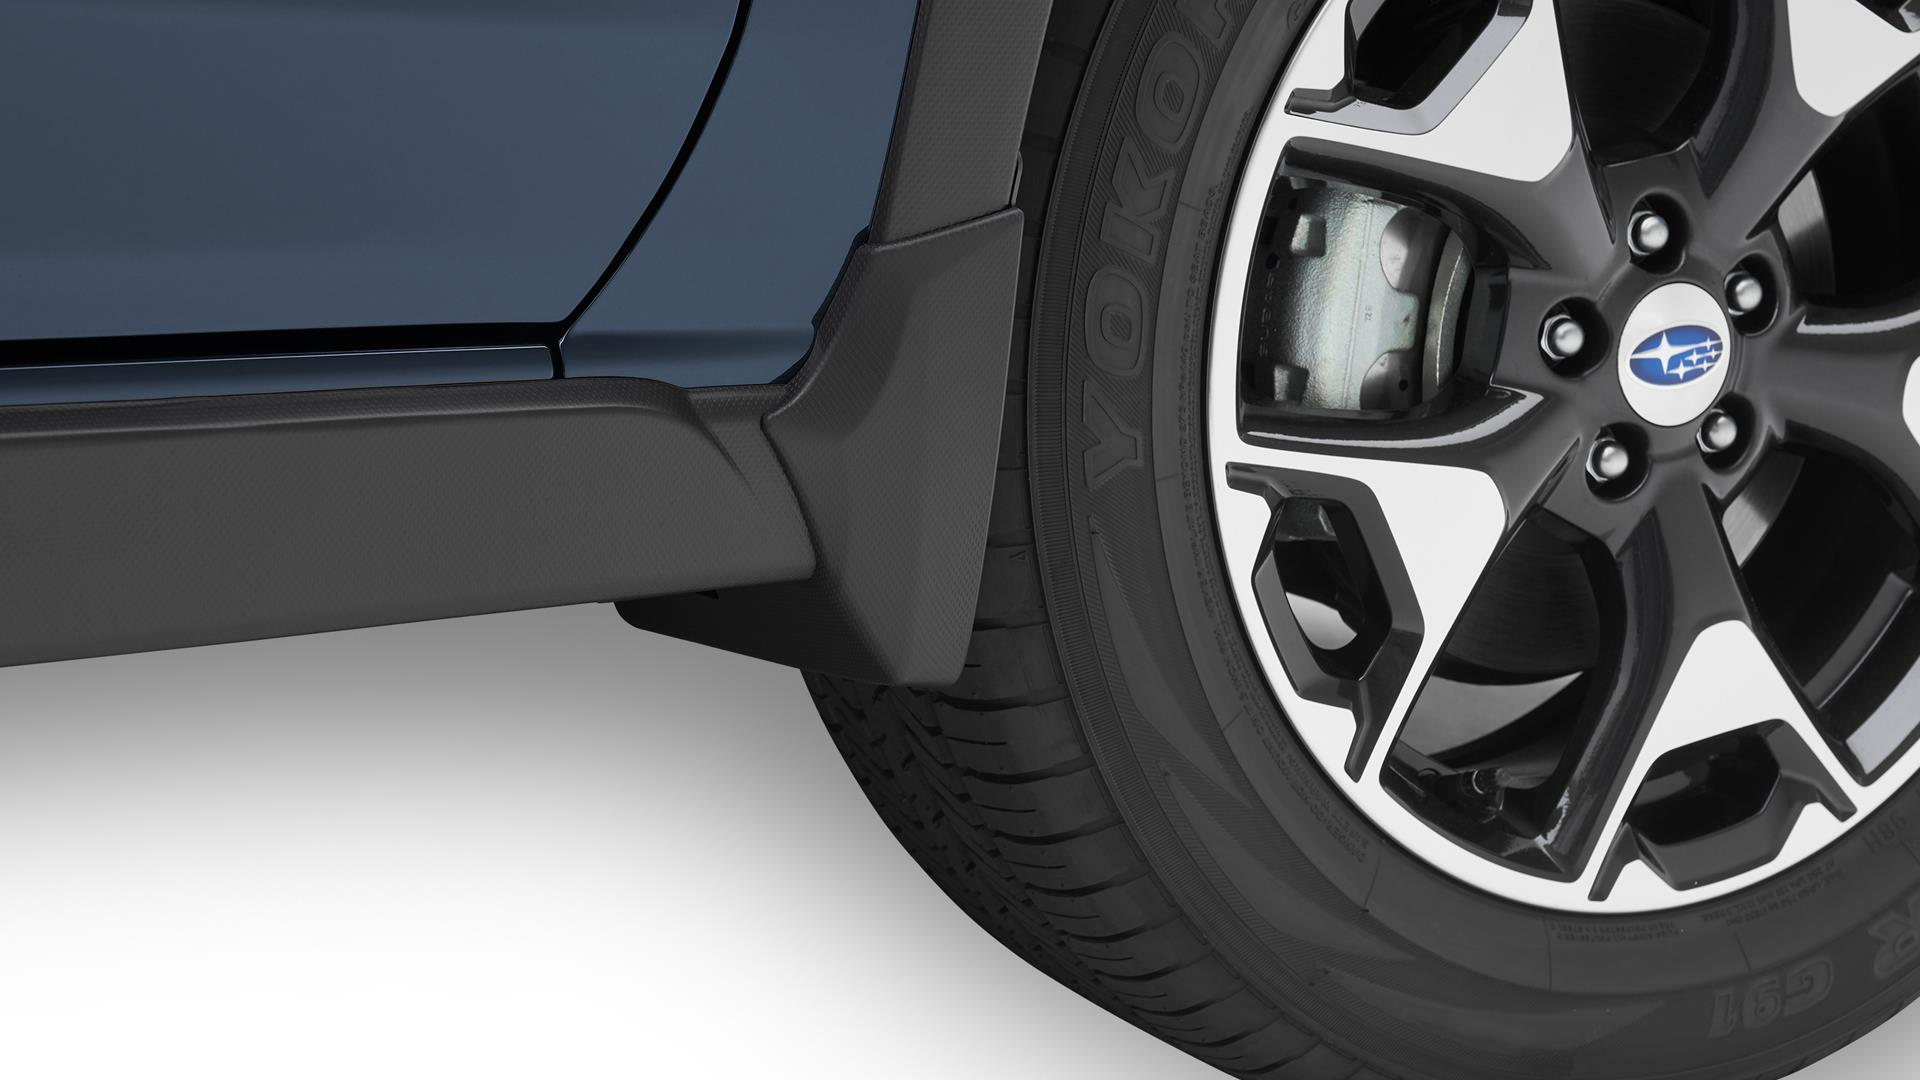 2018 Subaru Crosstrek Splash Guards Www Gov Cancer